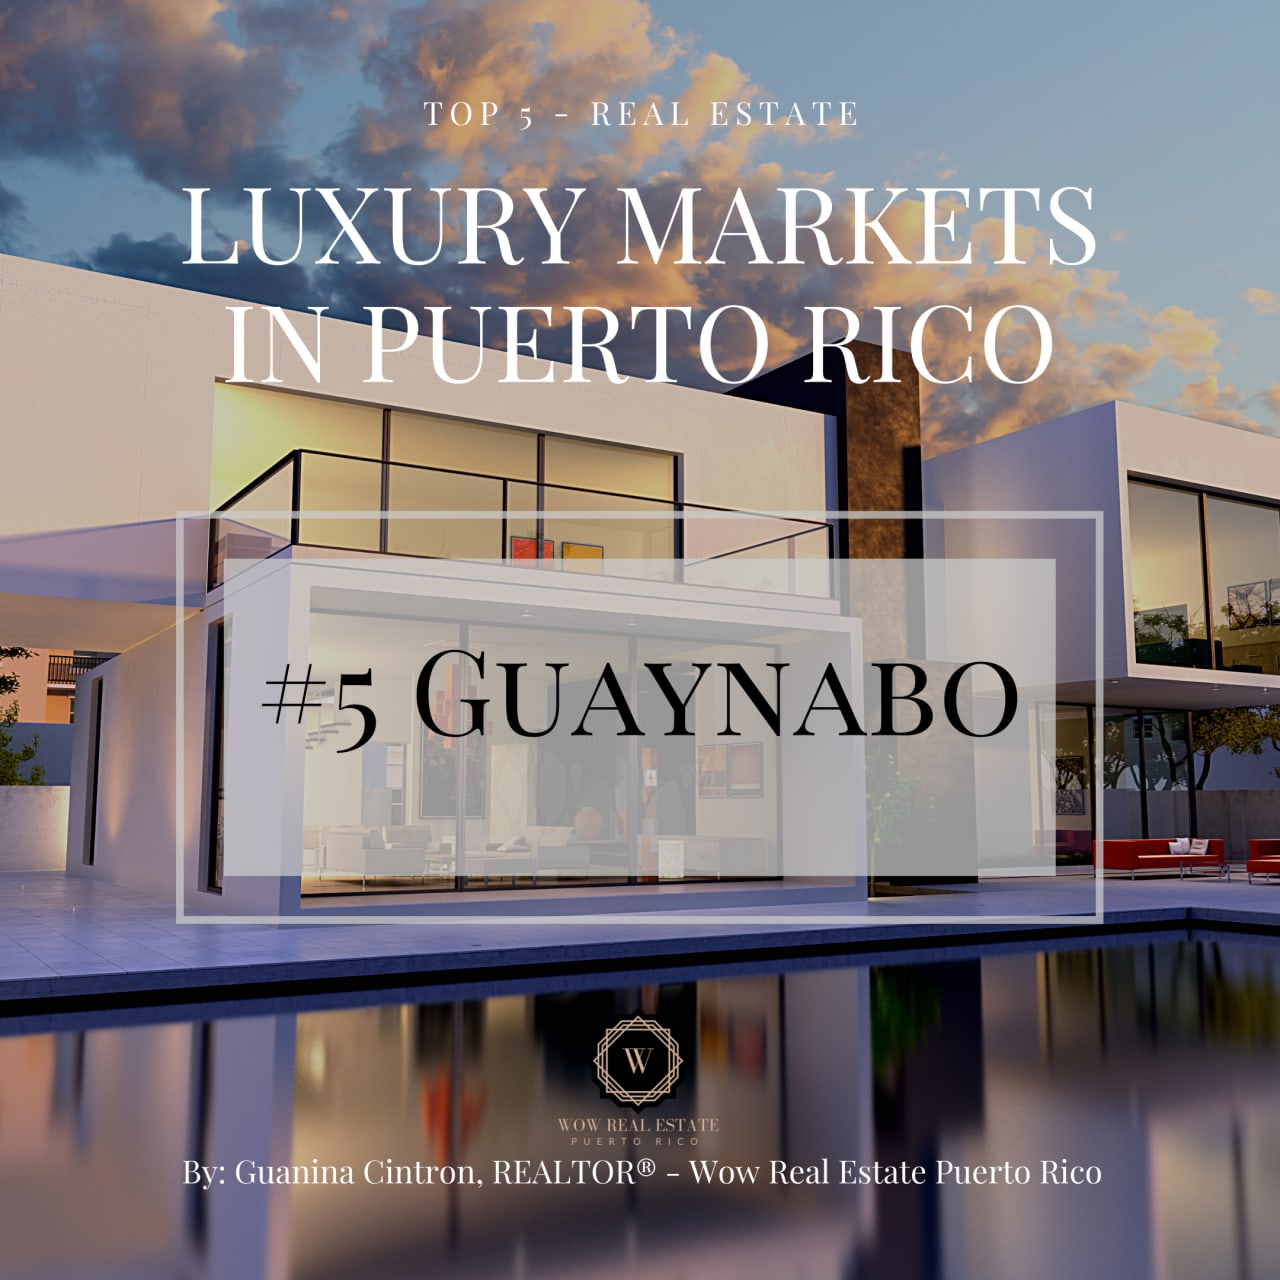 #5 of the Top 5 Real Estate Luxury Markets in Puerto Rico : Guaynabo